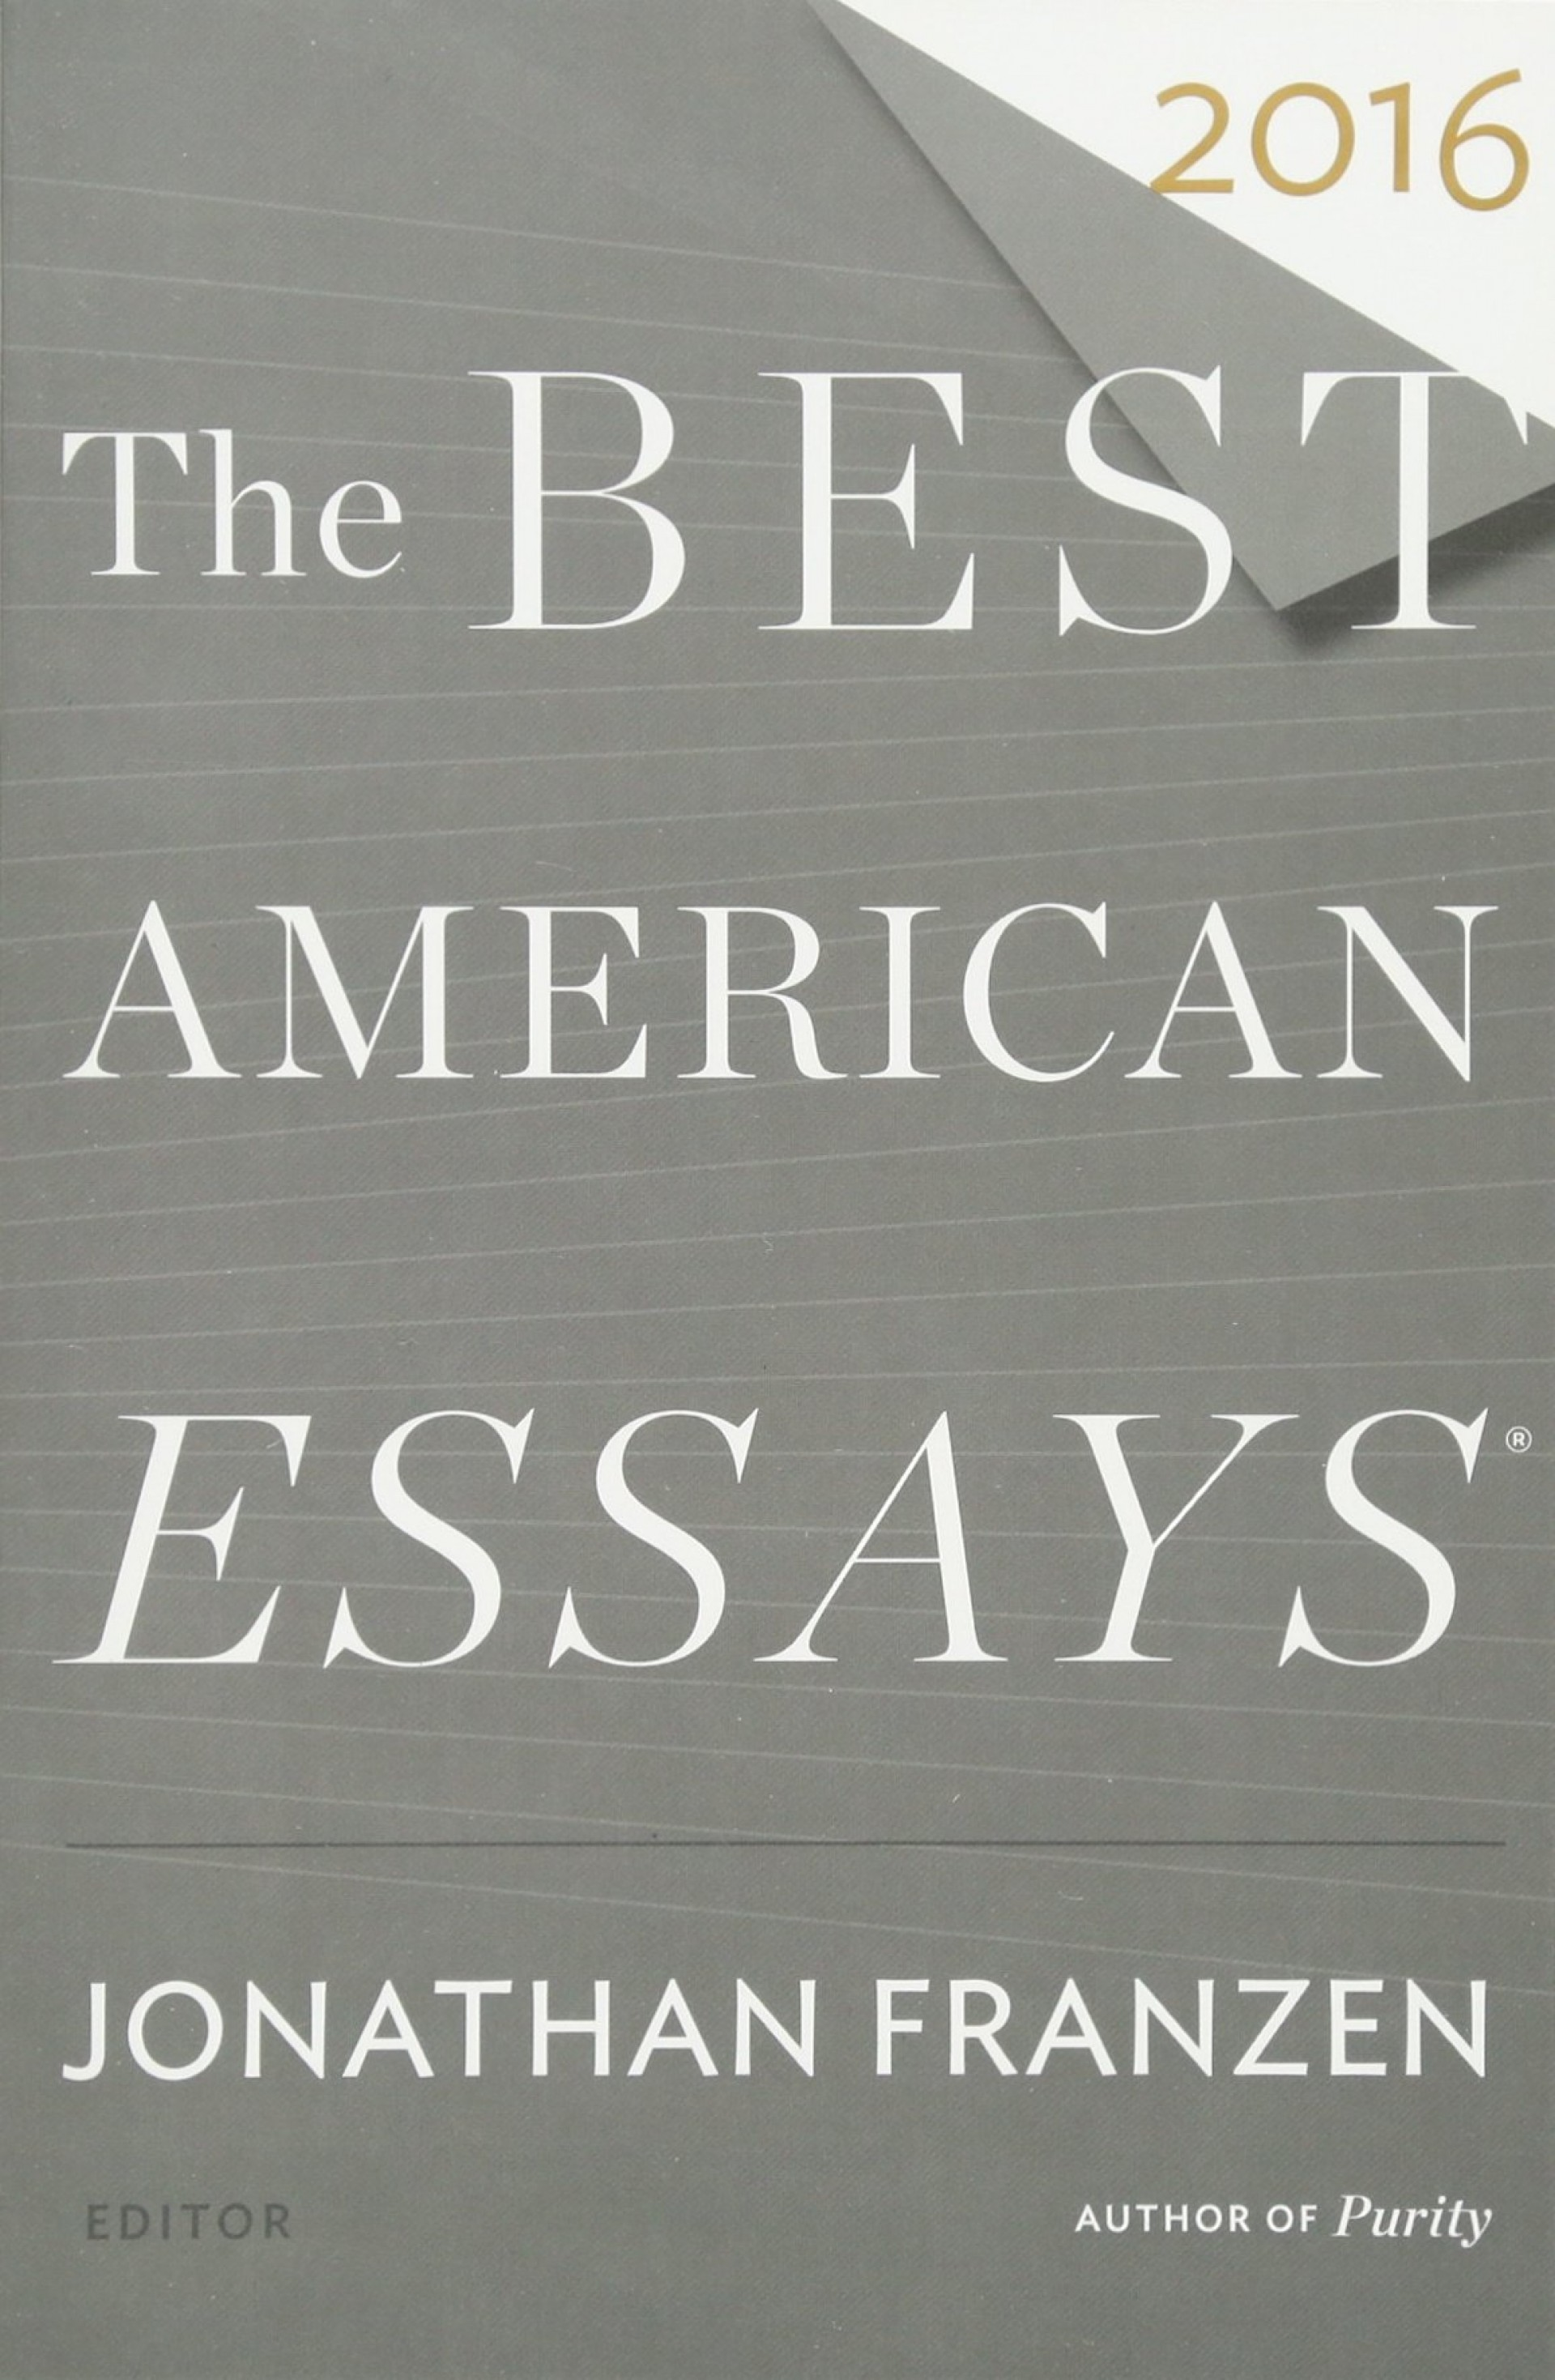 005 Best American Essays 71a6bhsgsdl Essay Striking 2017 Pdf Submissions 2019 Of The Century Table Contents 1920